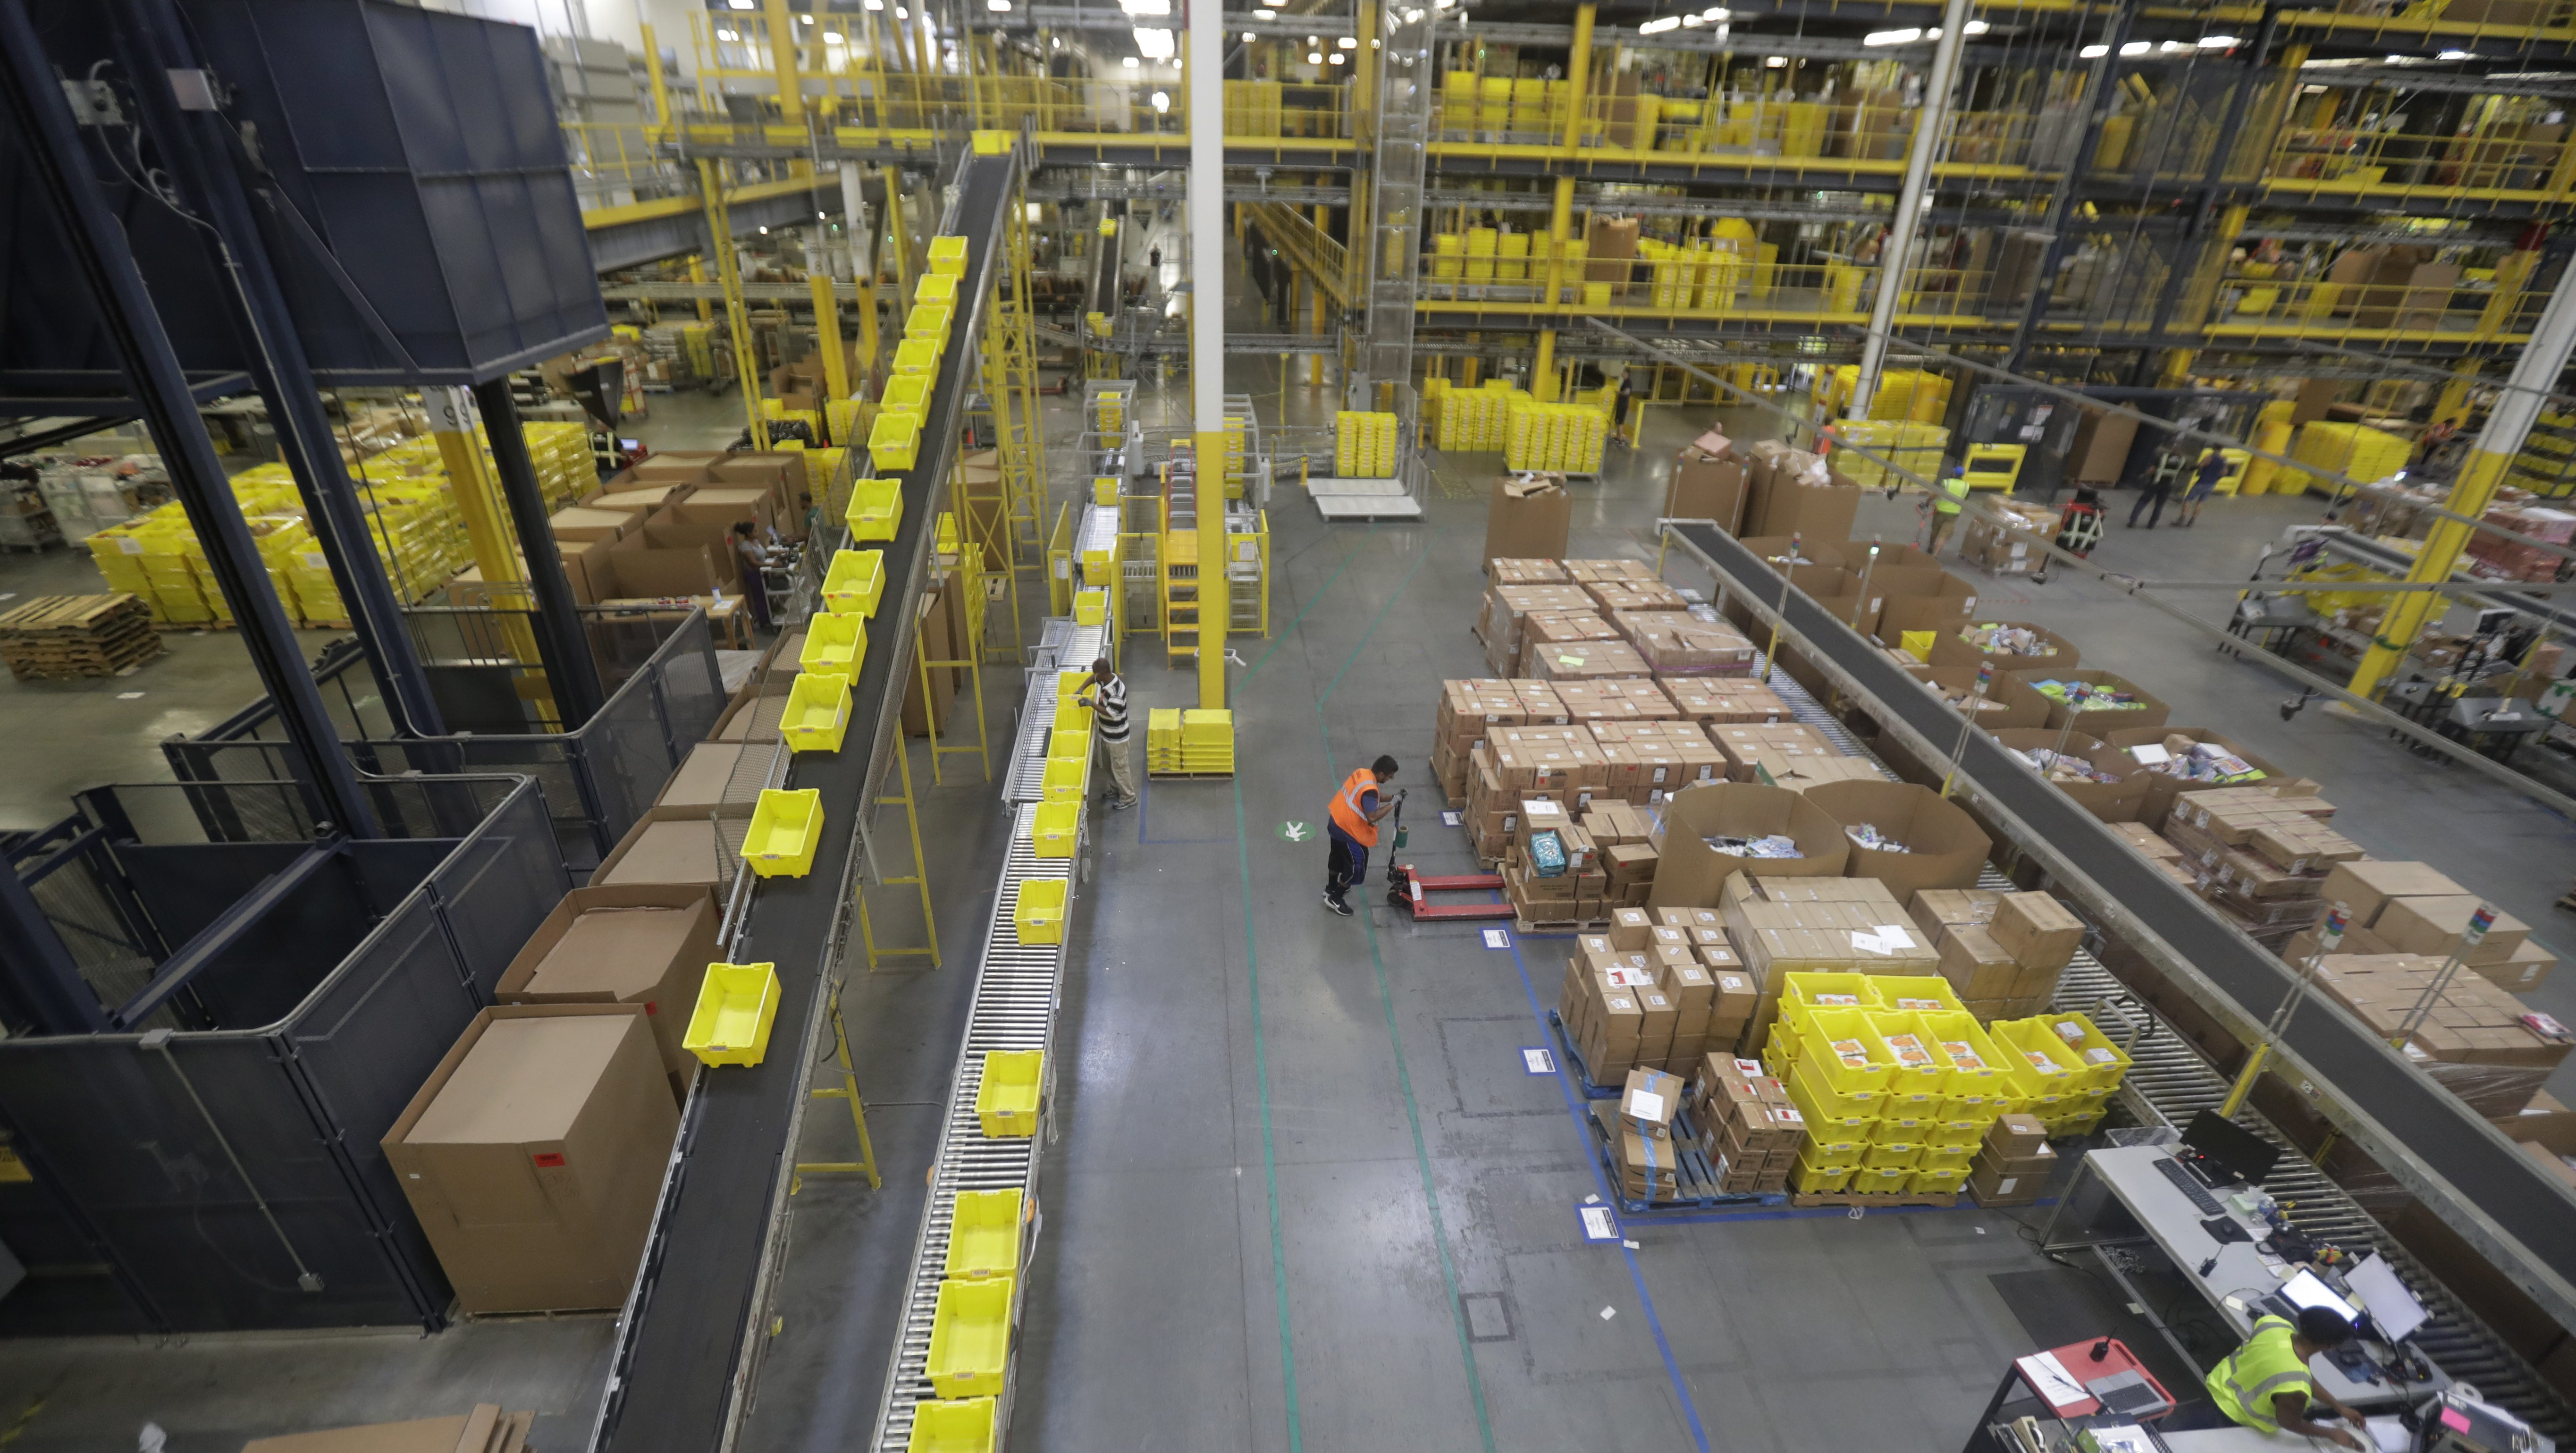 General scenes inside the Amazon Fulfillment center in Robbinsville Township, N.J., Tuesday, Aug. 1, 2017. Amazon held a nation-wide job fair at its warehouses on Aug. 2. (AP Photo/Julio Cortez)